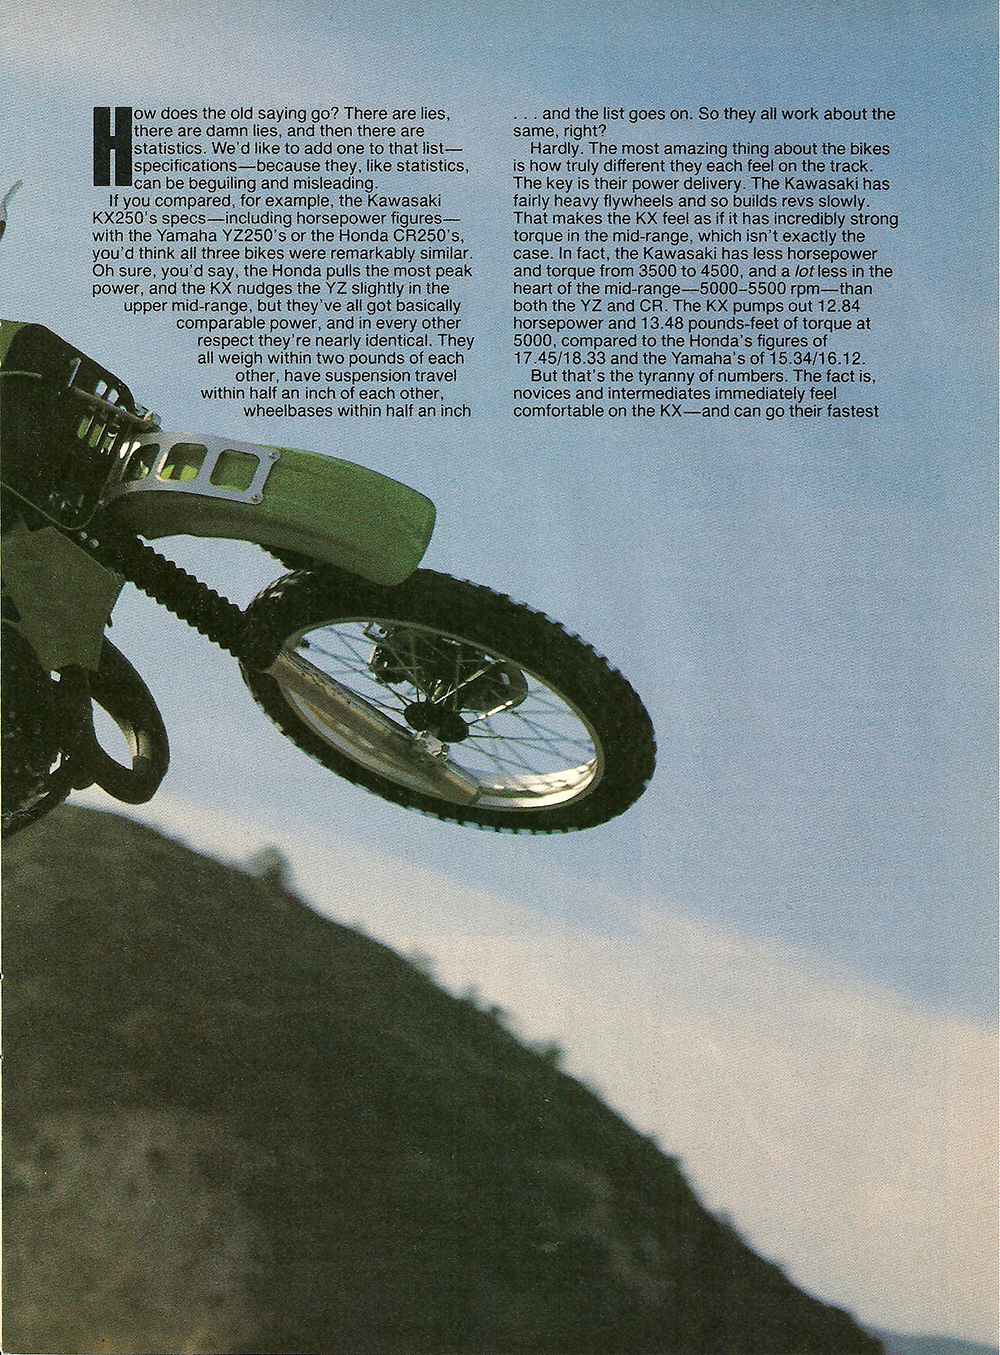 1984 Kawasaki KX250 road test 2.jpg